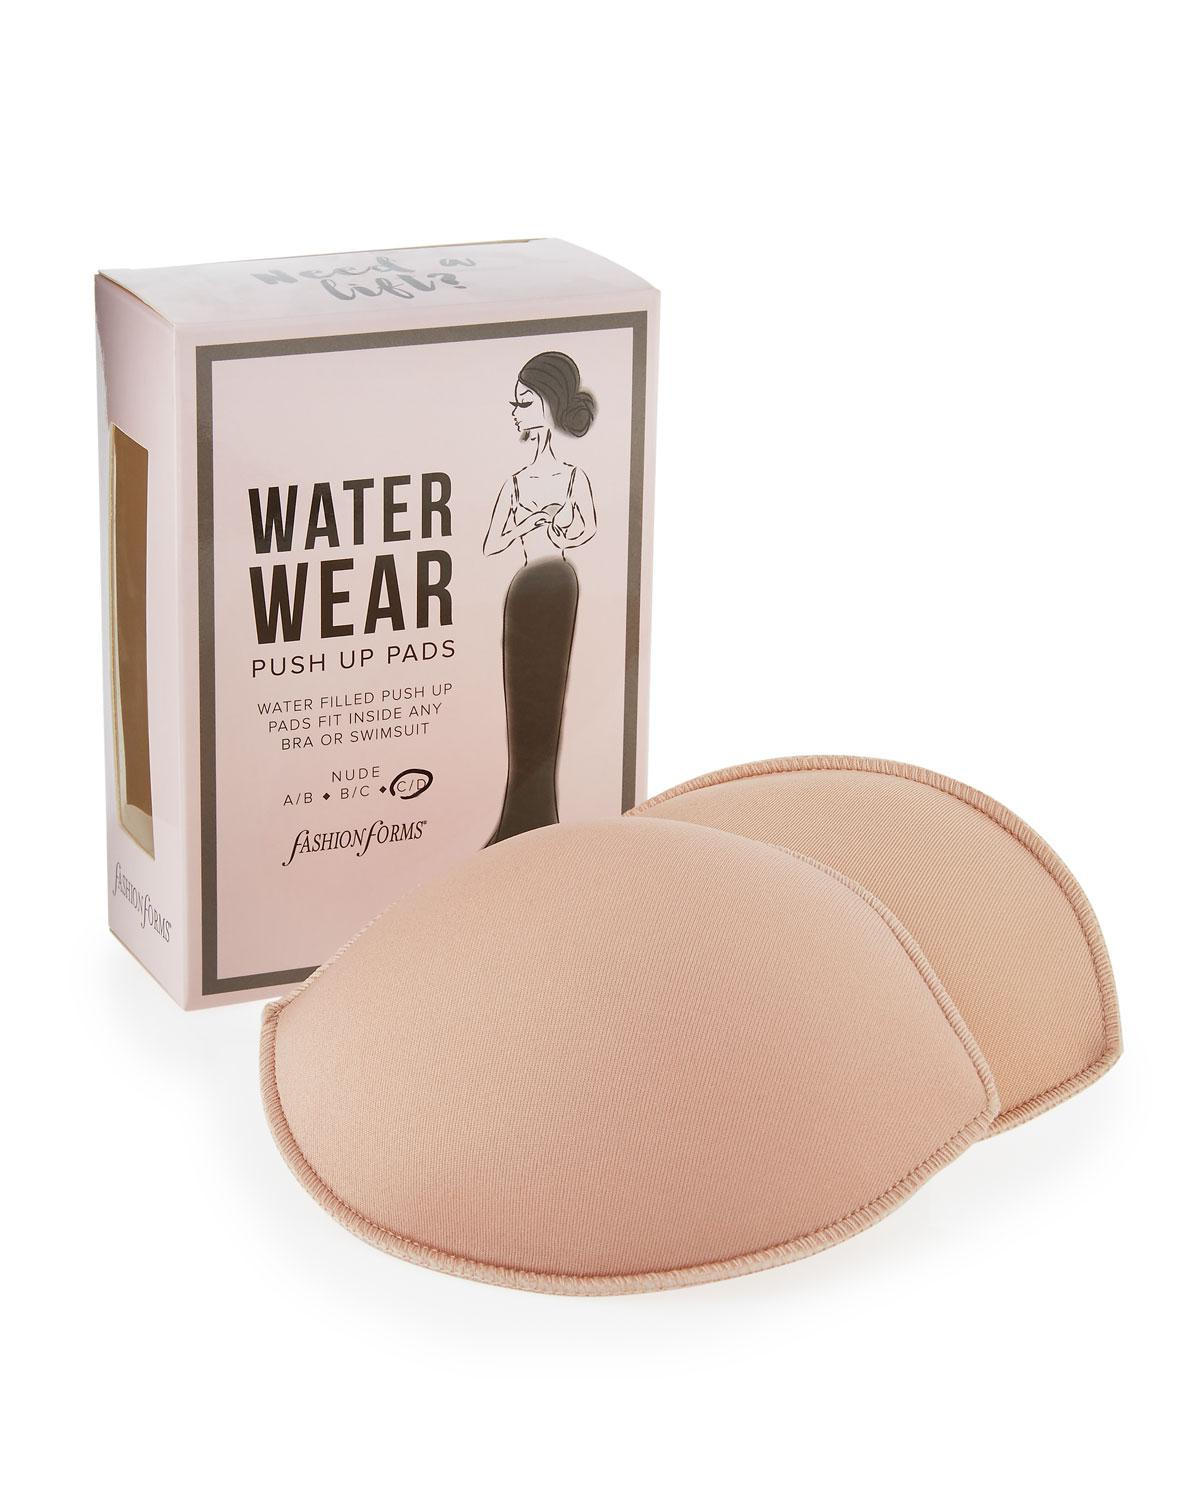 b9c89c84808 Lyst - Fashion Forms Water-filled Push-up Pads in Natural